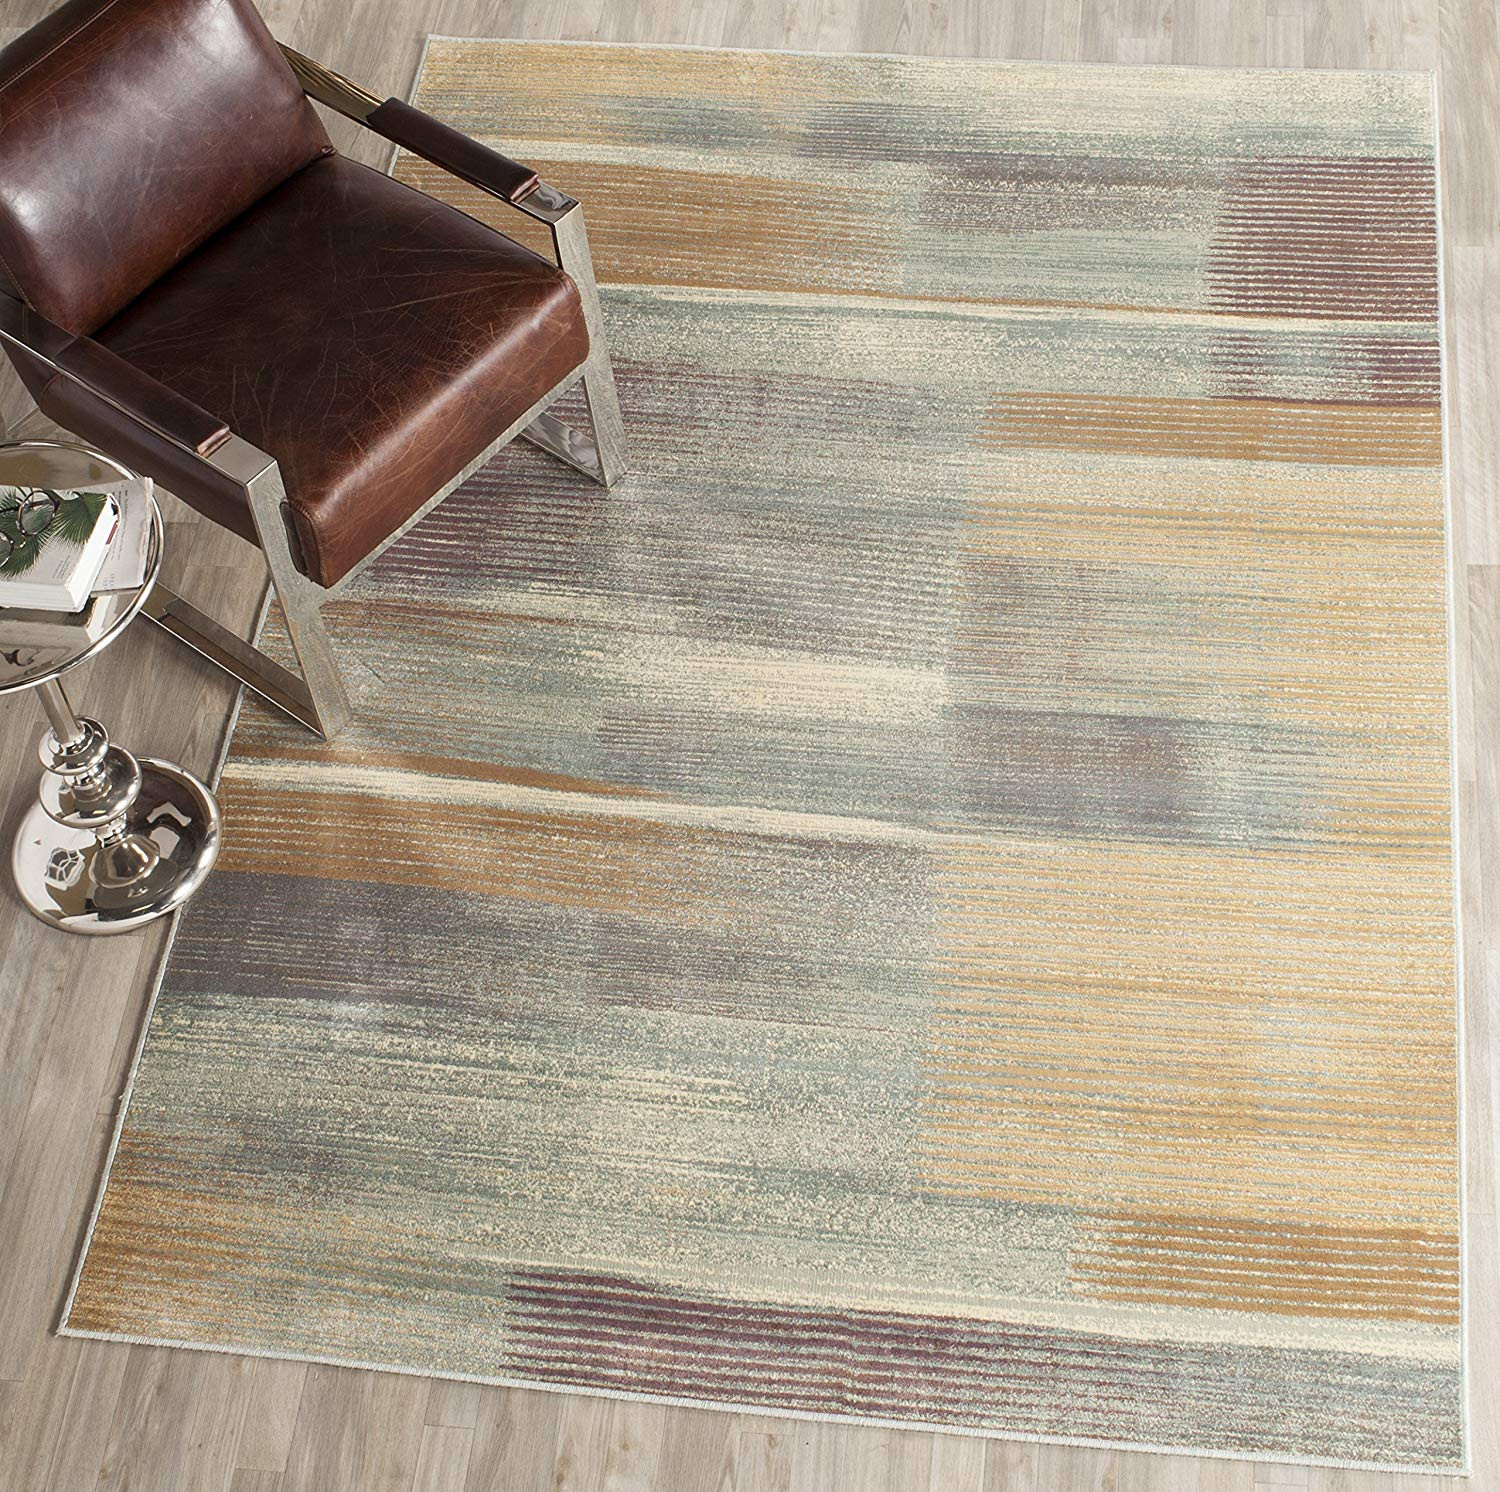 staining hardwood floors with buffer of amazon com safavieh vintage premium collection vtg198 2110 regarding amazon com safavieh vintage premium collection vtg198 2110 transitional abstract light blue distressed silky viscose area rug 67 x 92 kitchen